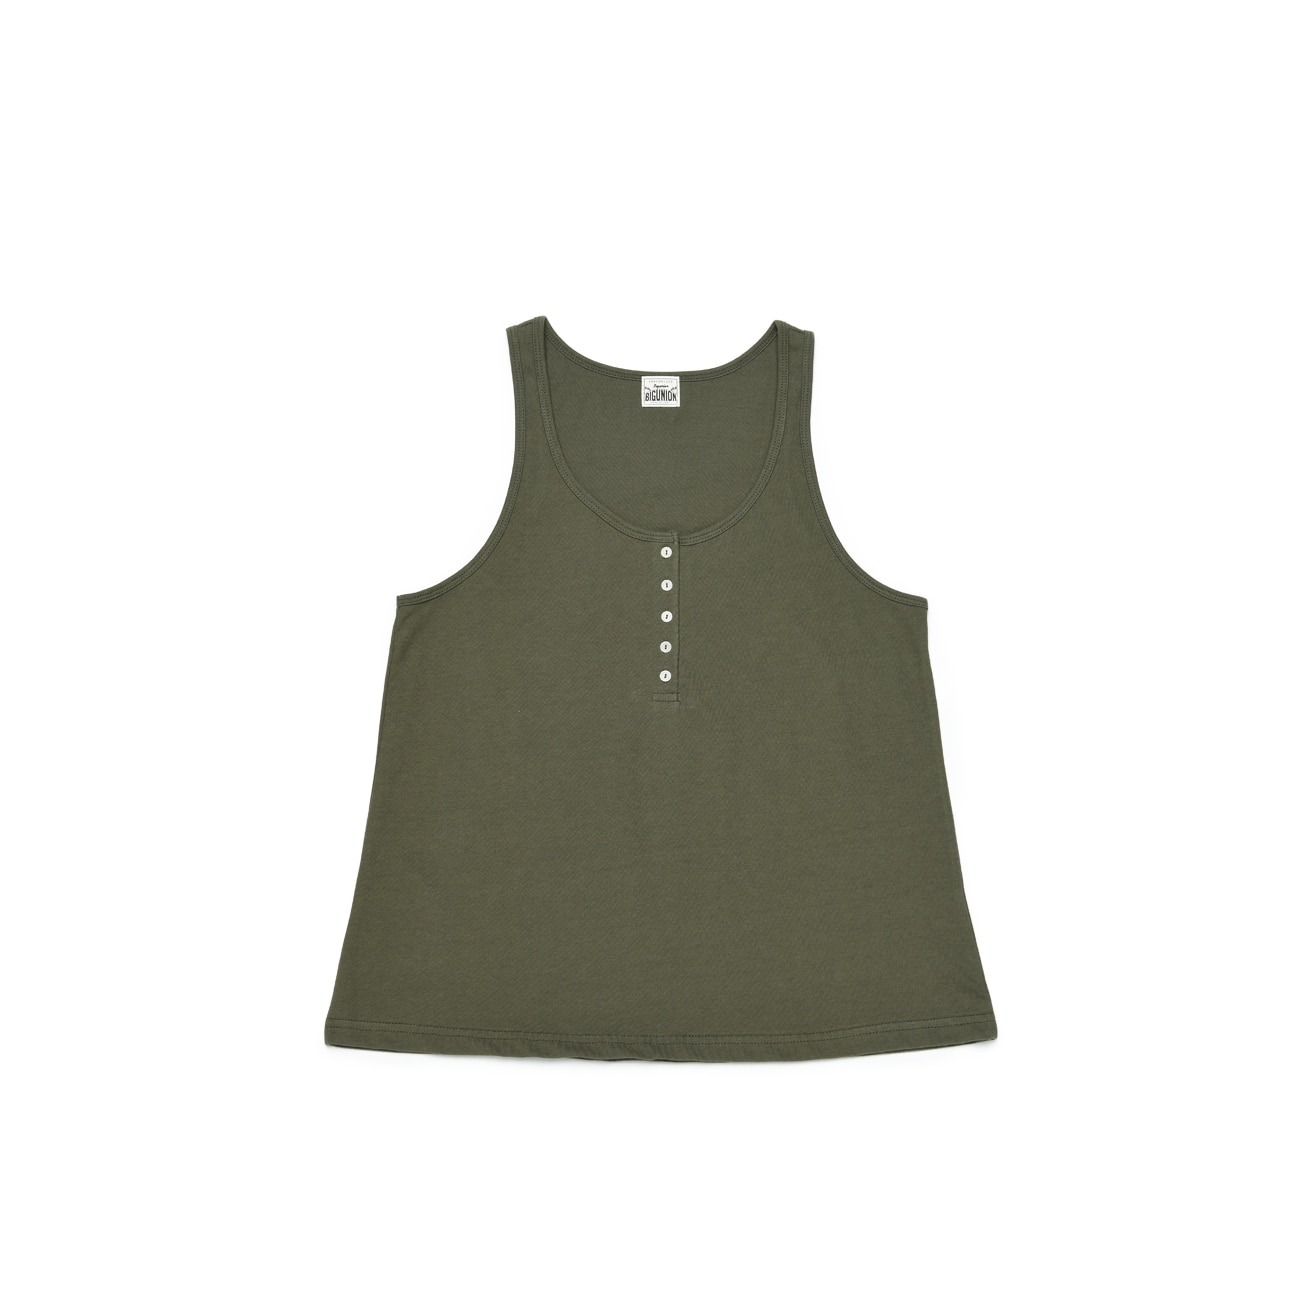 Henly Neck Sleeveless T-Shirt